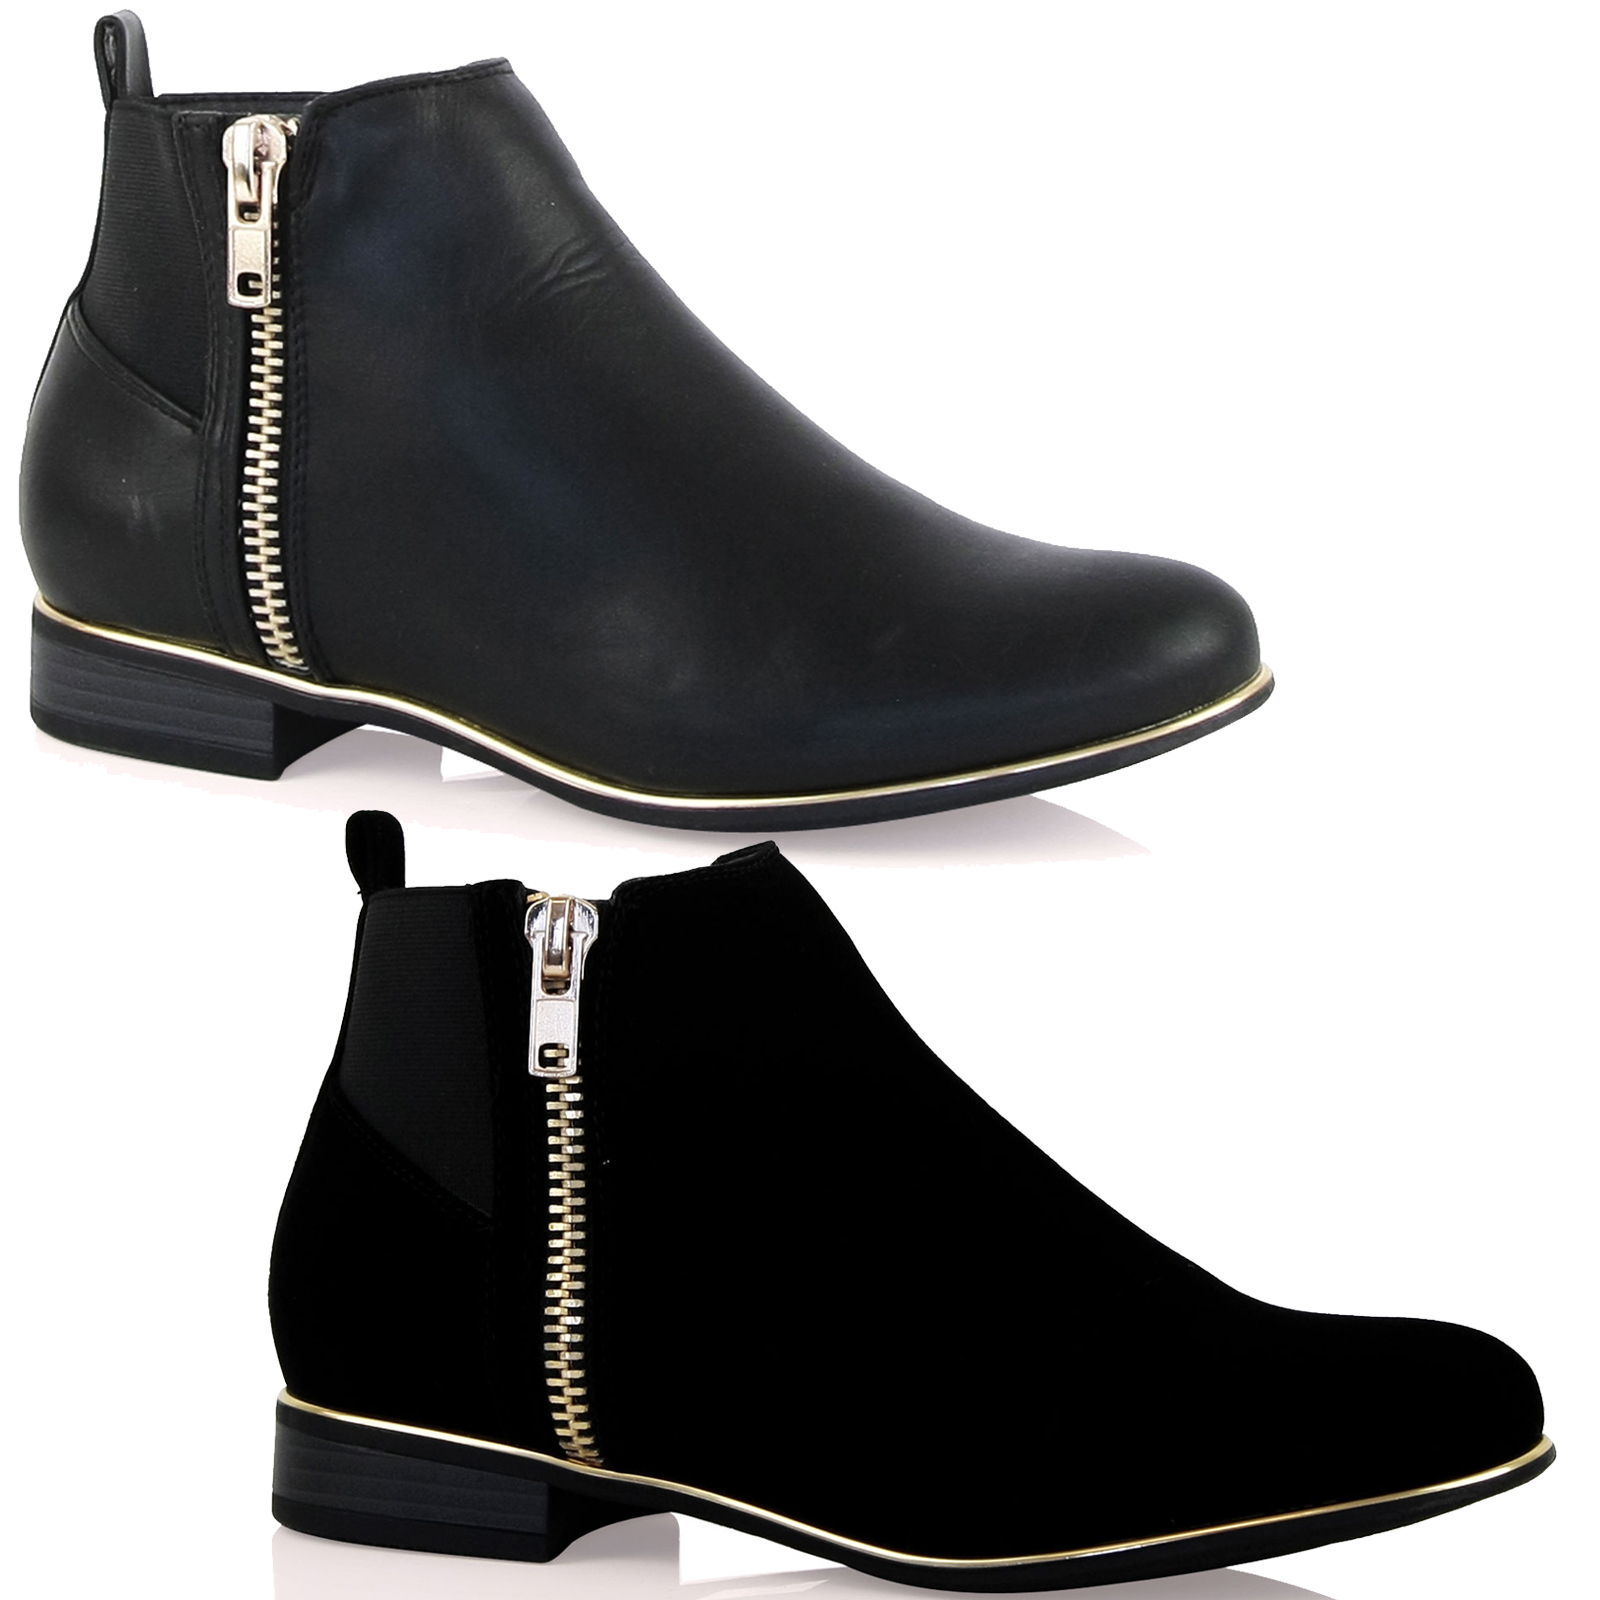 a12 new womens flat fashion zip detail ankle boots gold